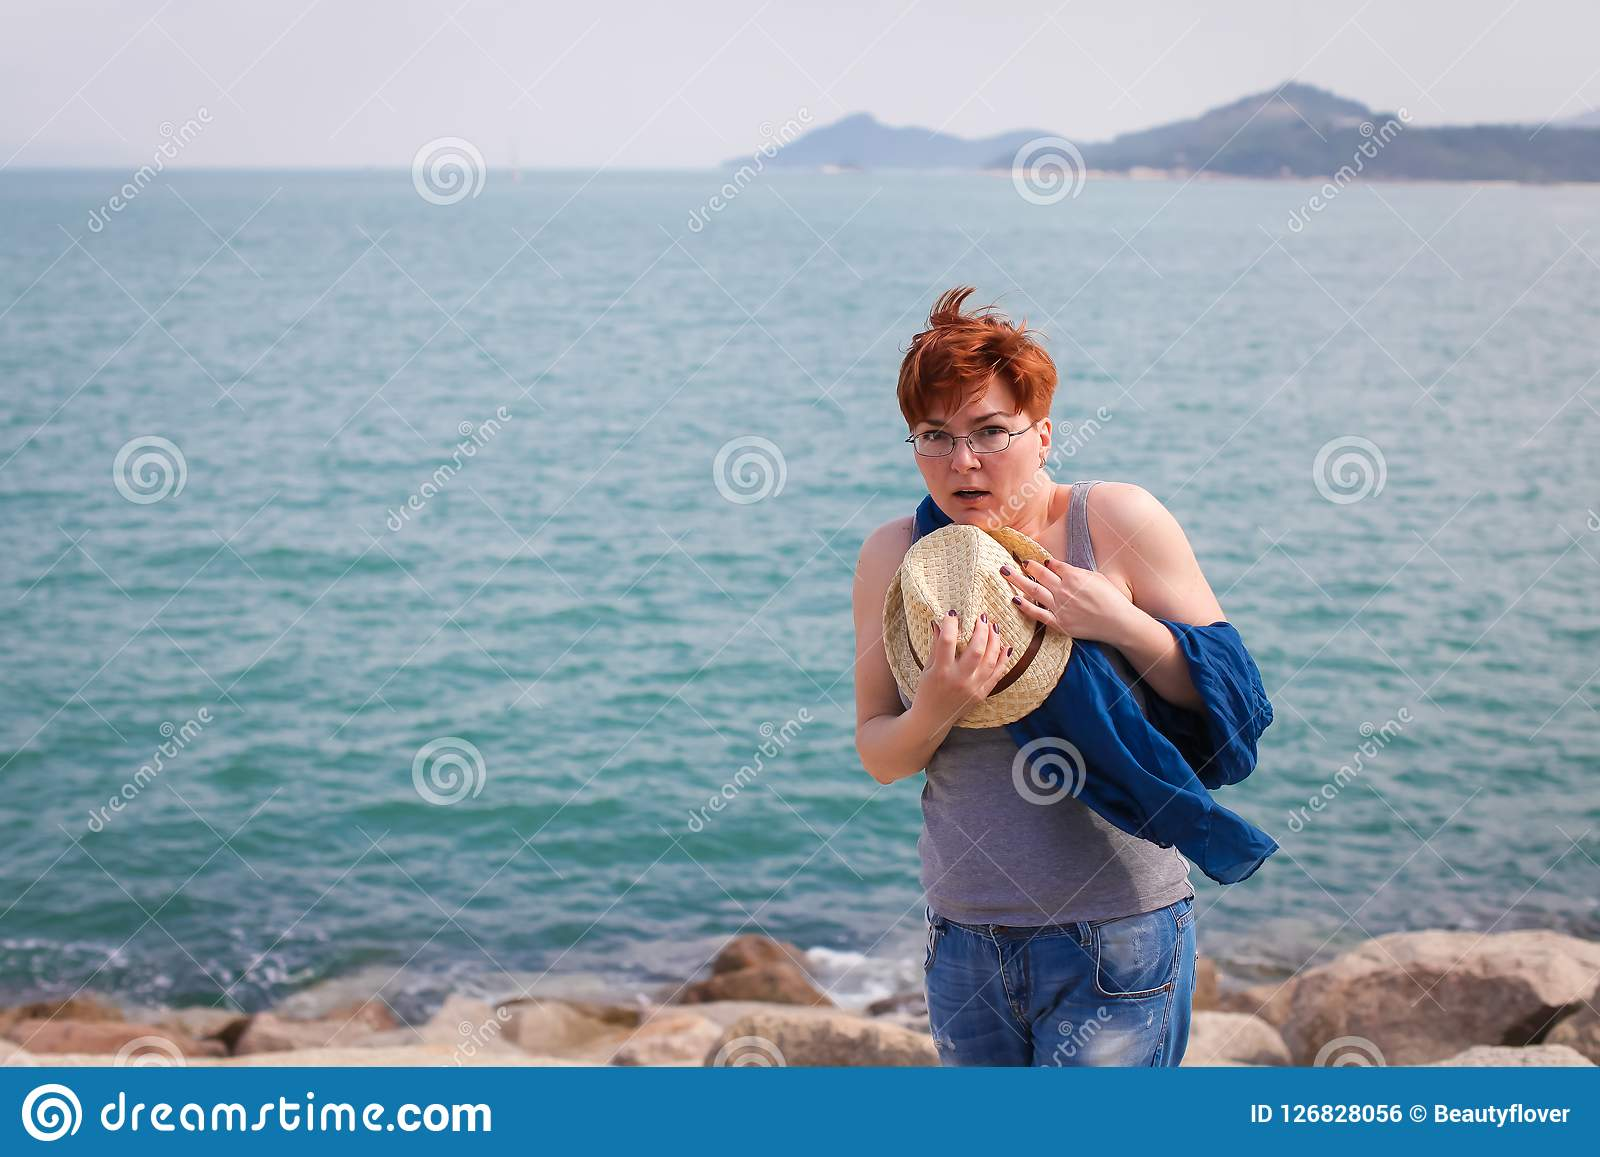 Windy summer days relaxing on coast feeling good. adult woman in glasses and jeans walks on the coast, portrays fright